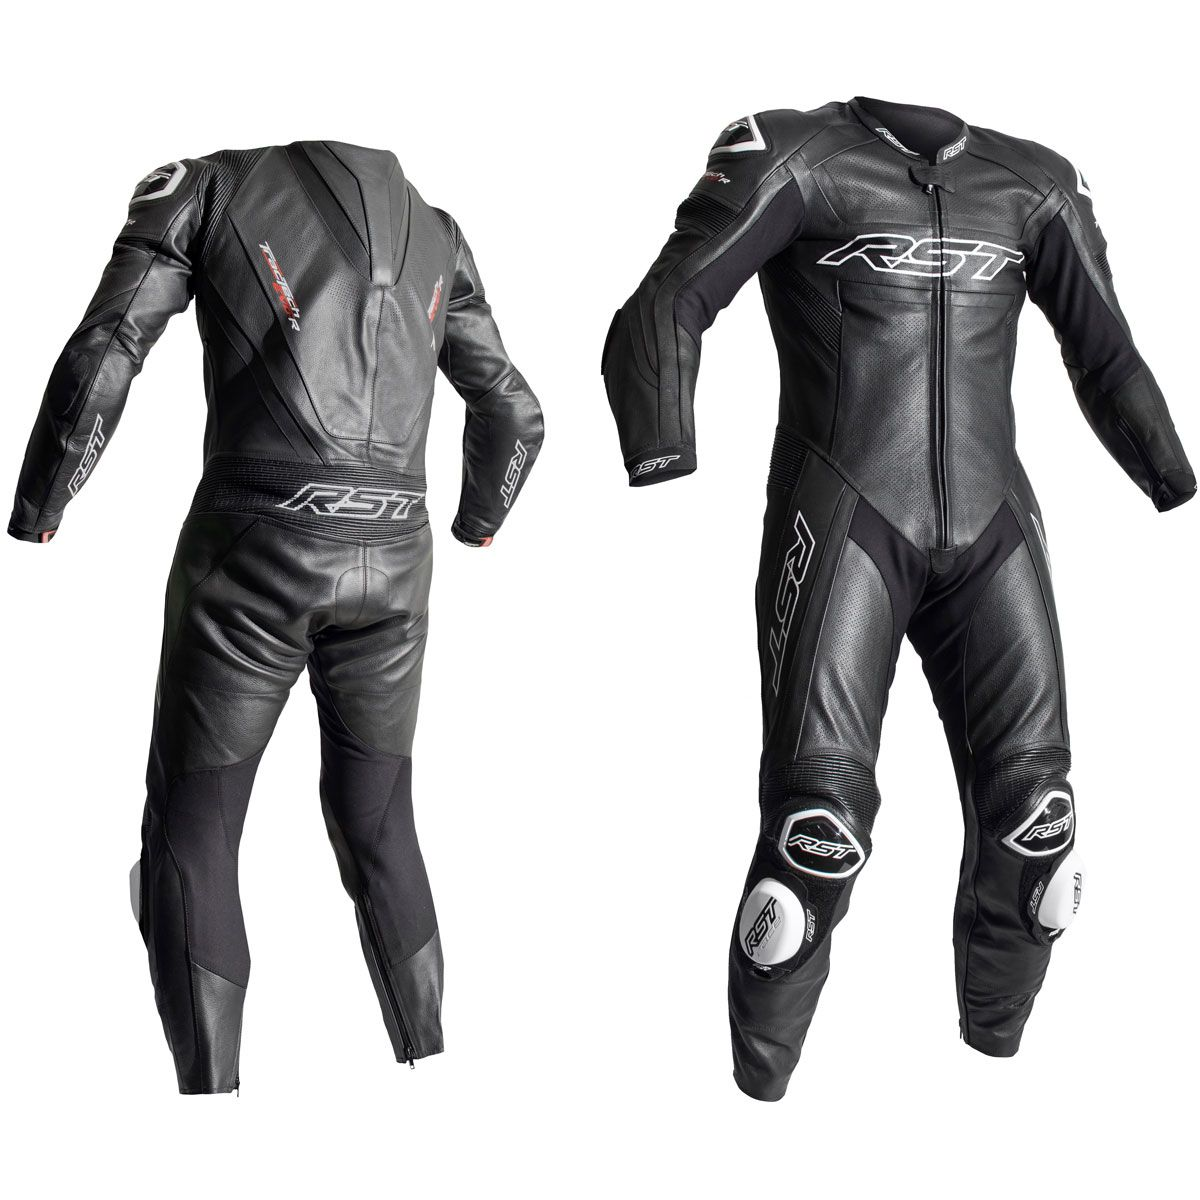 RST Tractech Evo R CE One Piece Leather Suit Black / Black